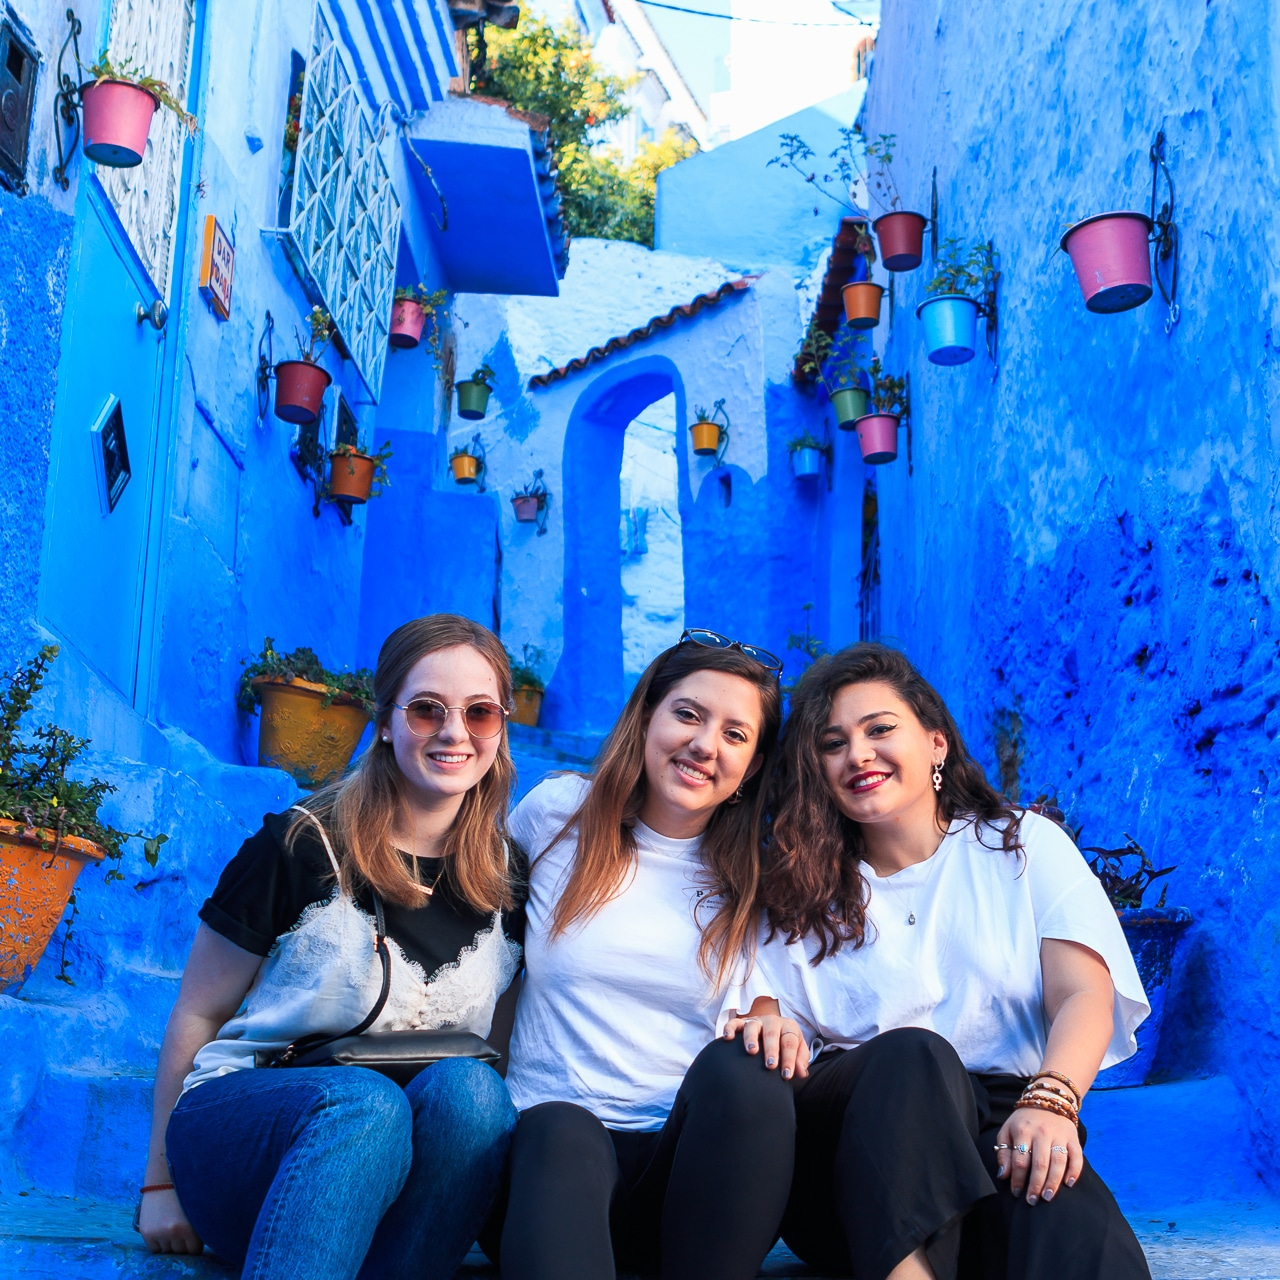 Excursion to Morocco - study Spanish abroad